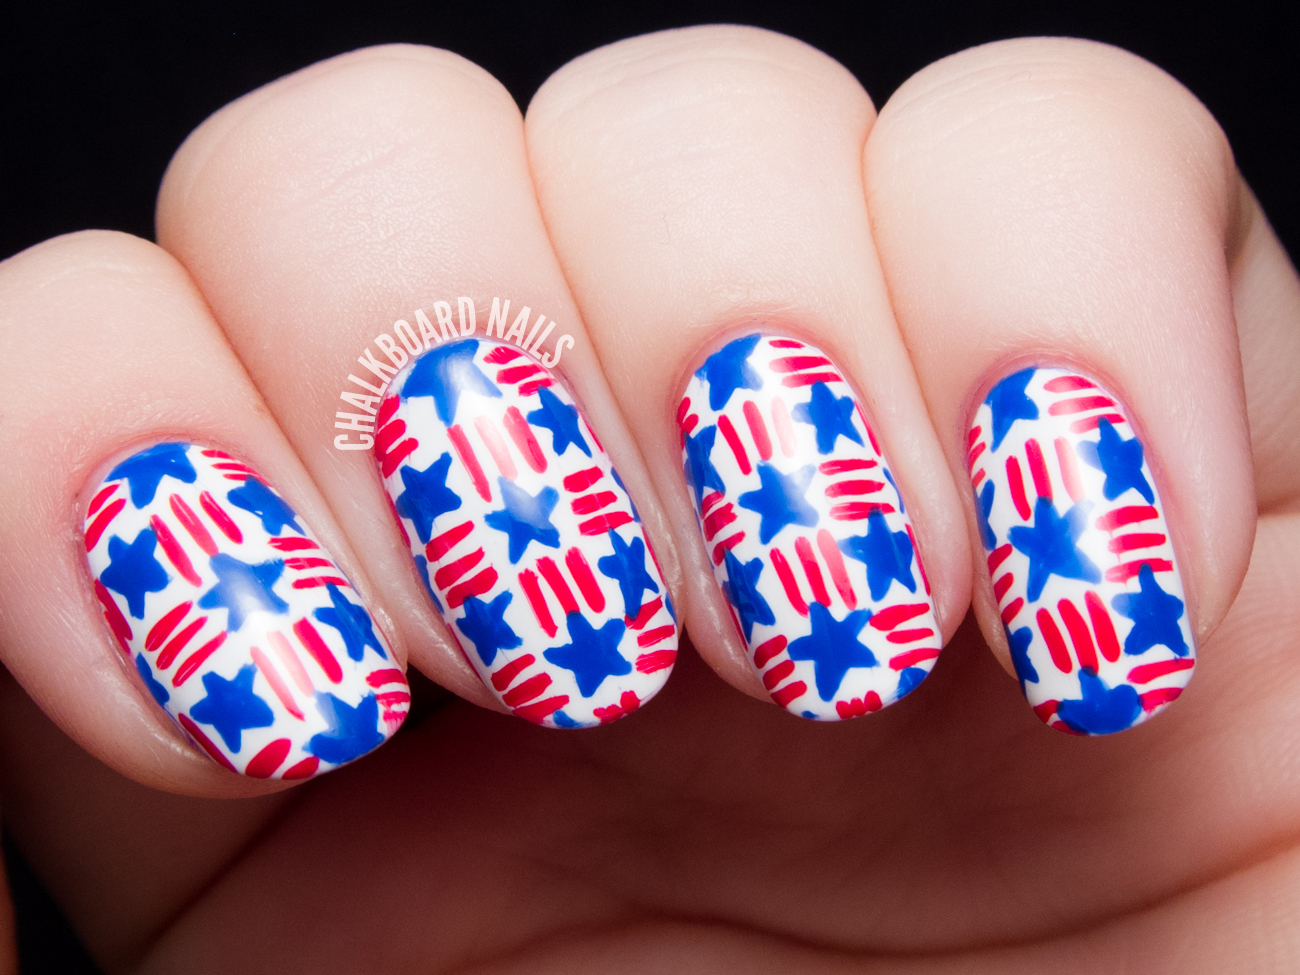 Stars and Stripes Basket Weave Nail Art | Red White n Blue Nails | Patriotic Memorial Day Nail Designs To Try Over the Long Weekend